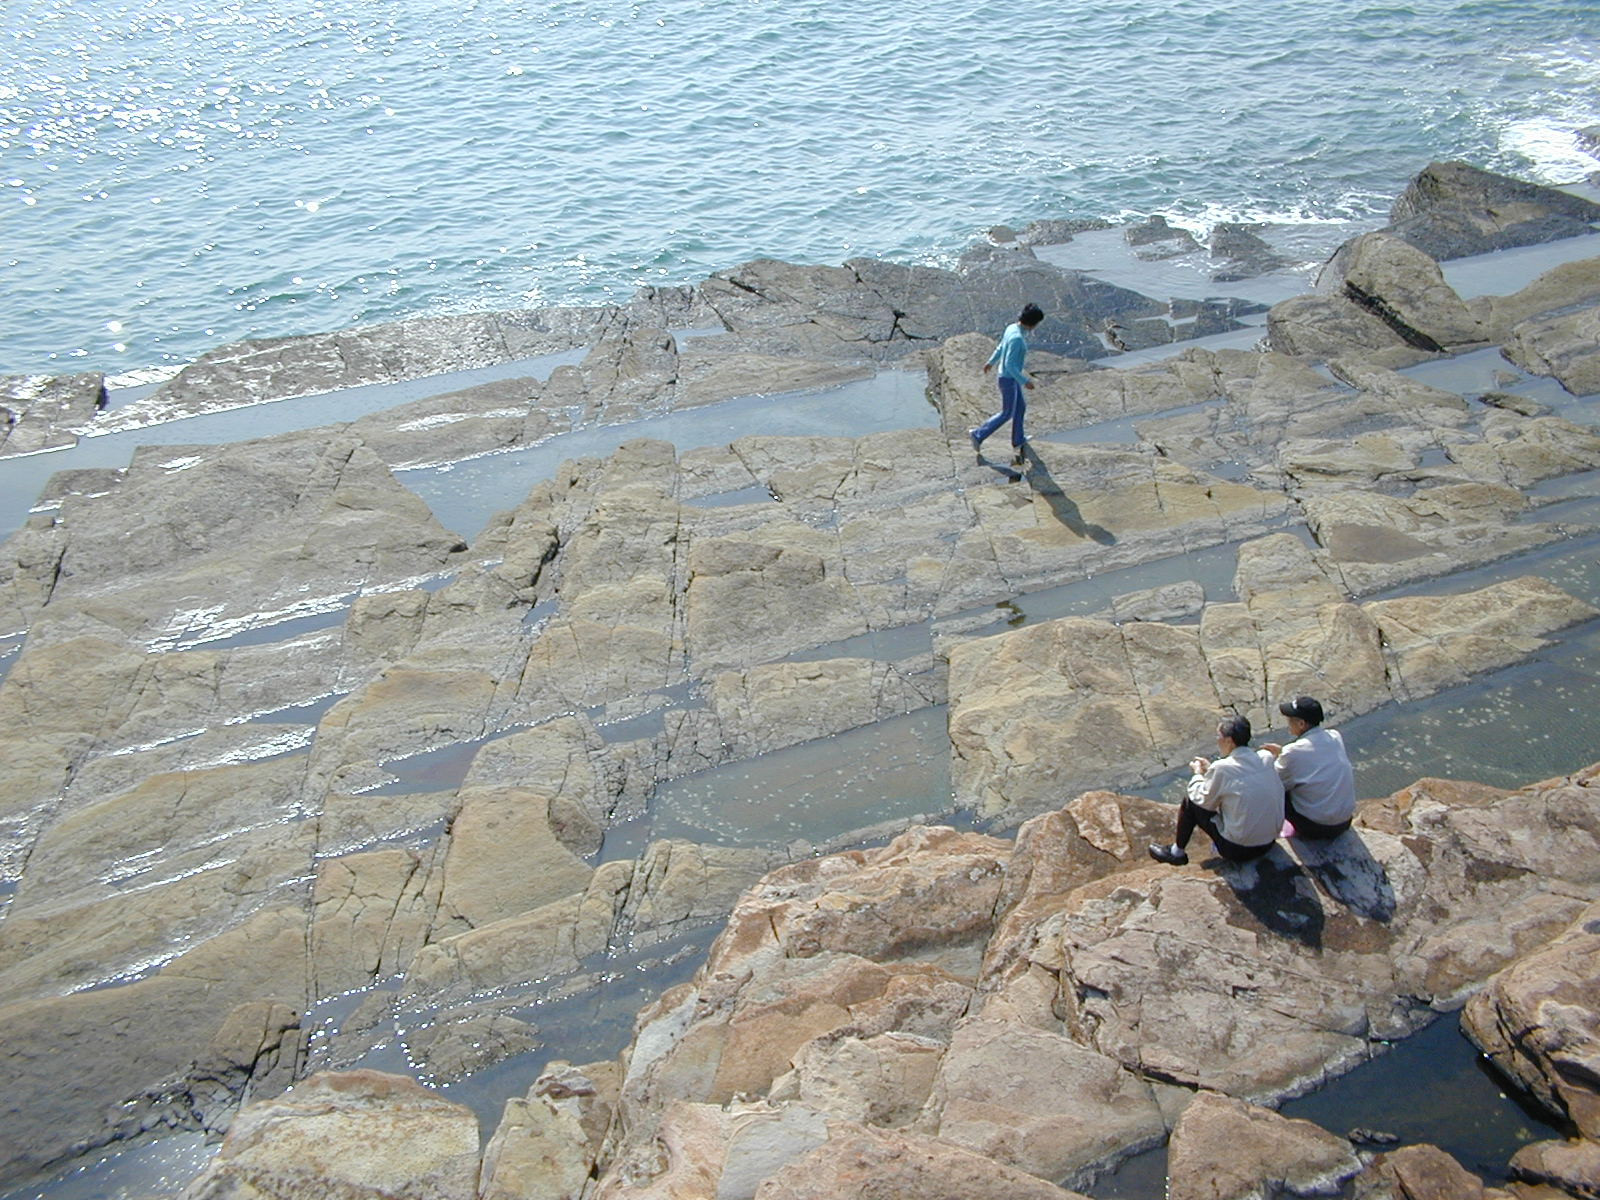 A wave-cut platform on Tung Ping Chau, Hong Kong SAR. The rocks are part of the Ping Chau Formation of Paleogene age. Photo taken on November 23, 2003.